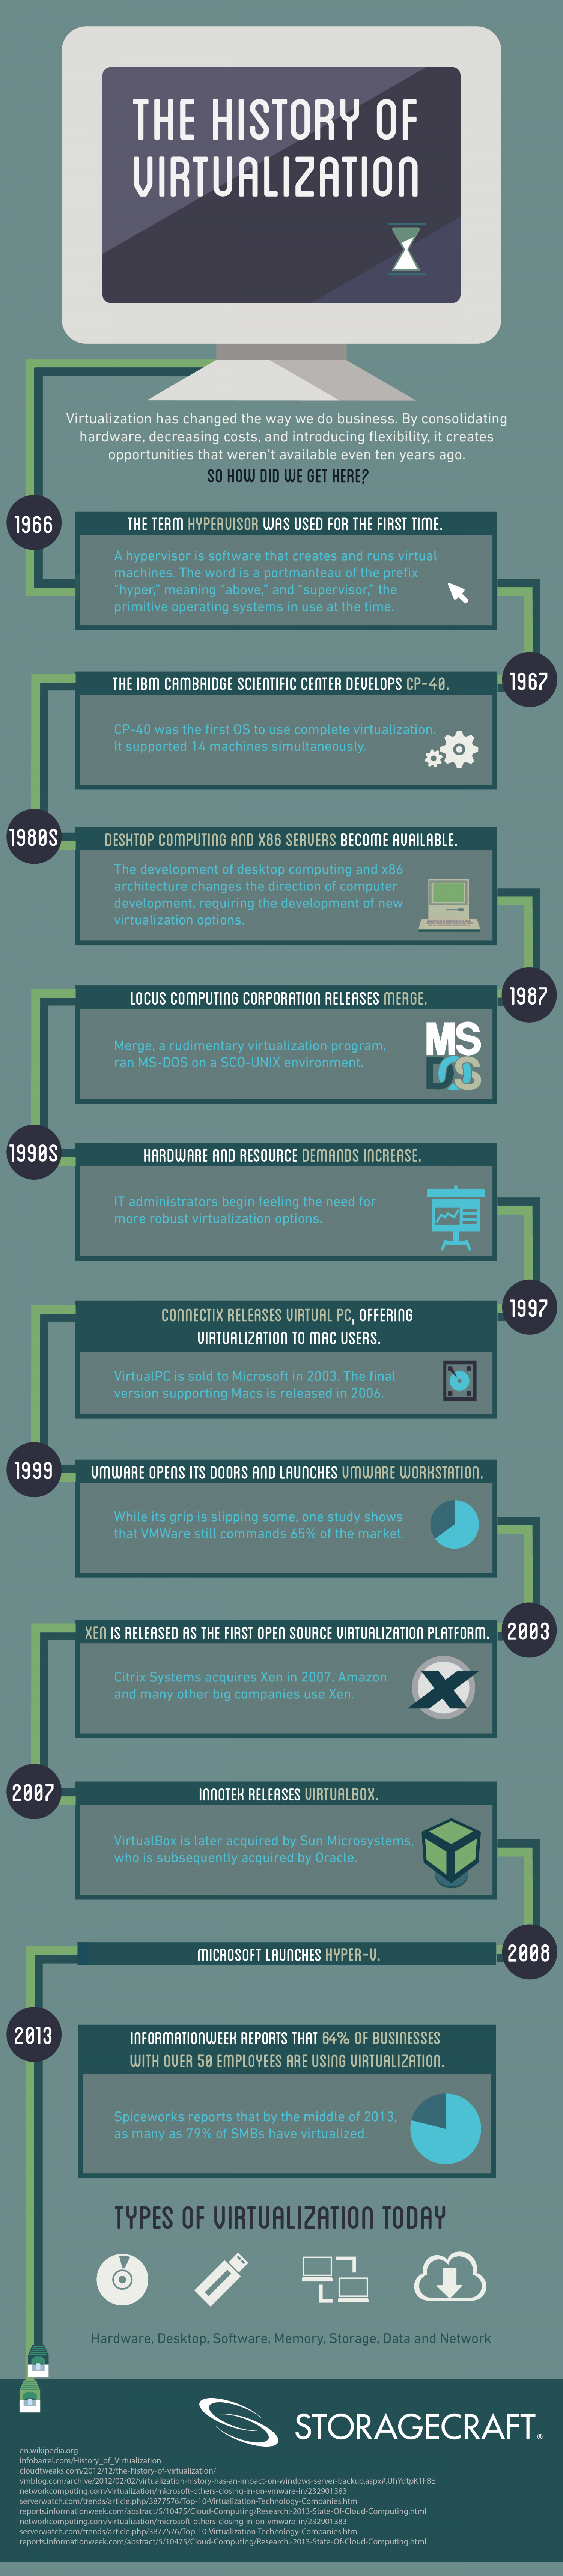 The History of Virtualization Infographic